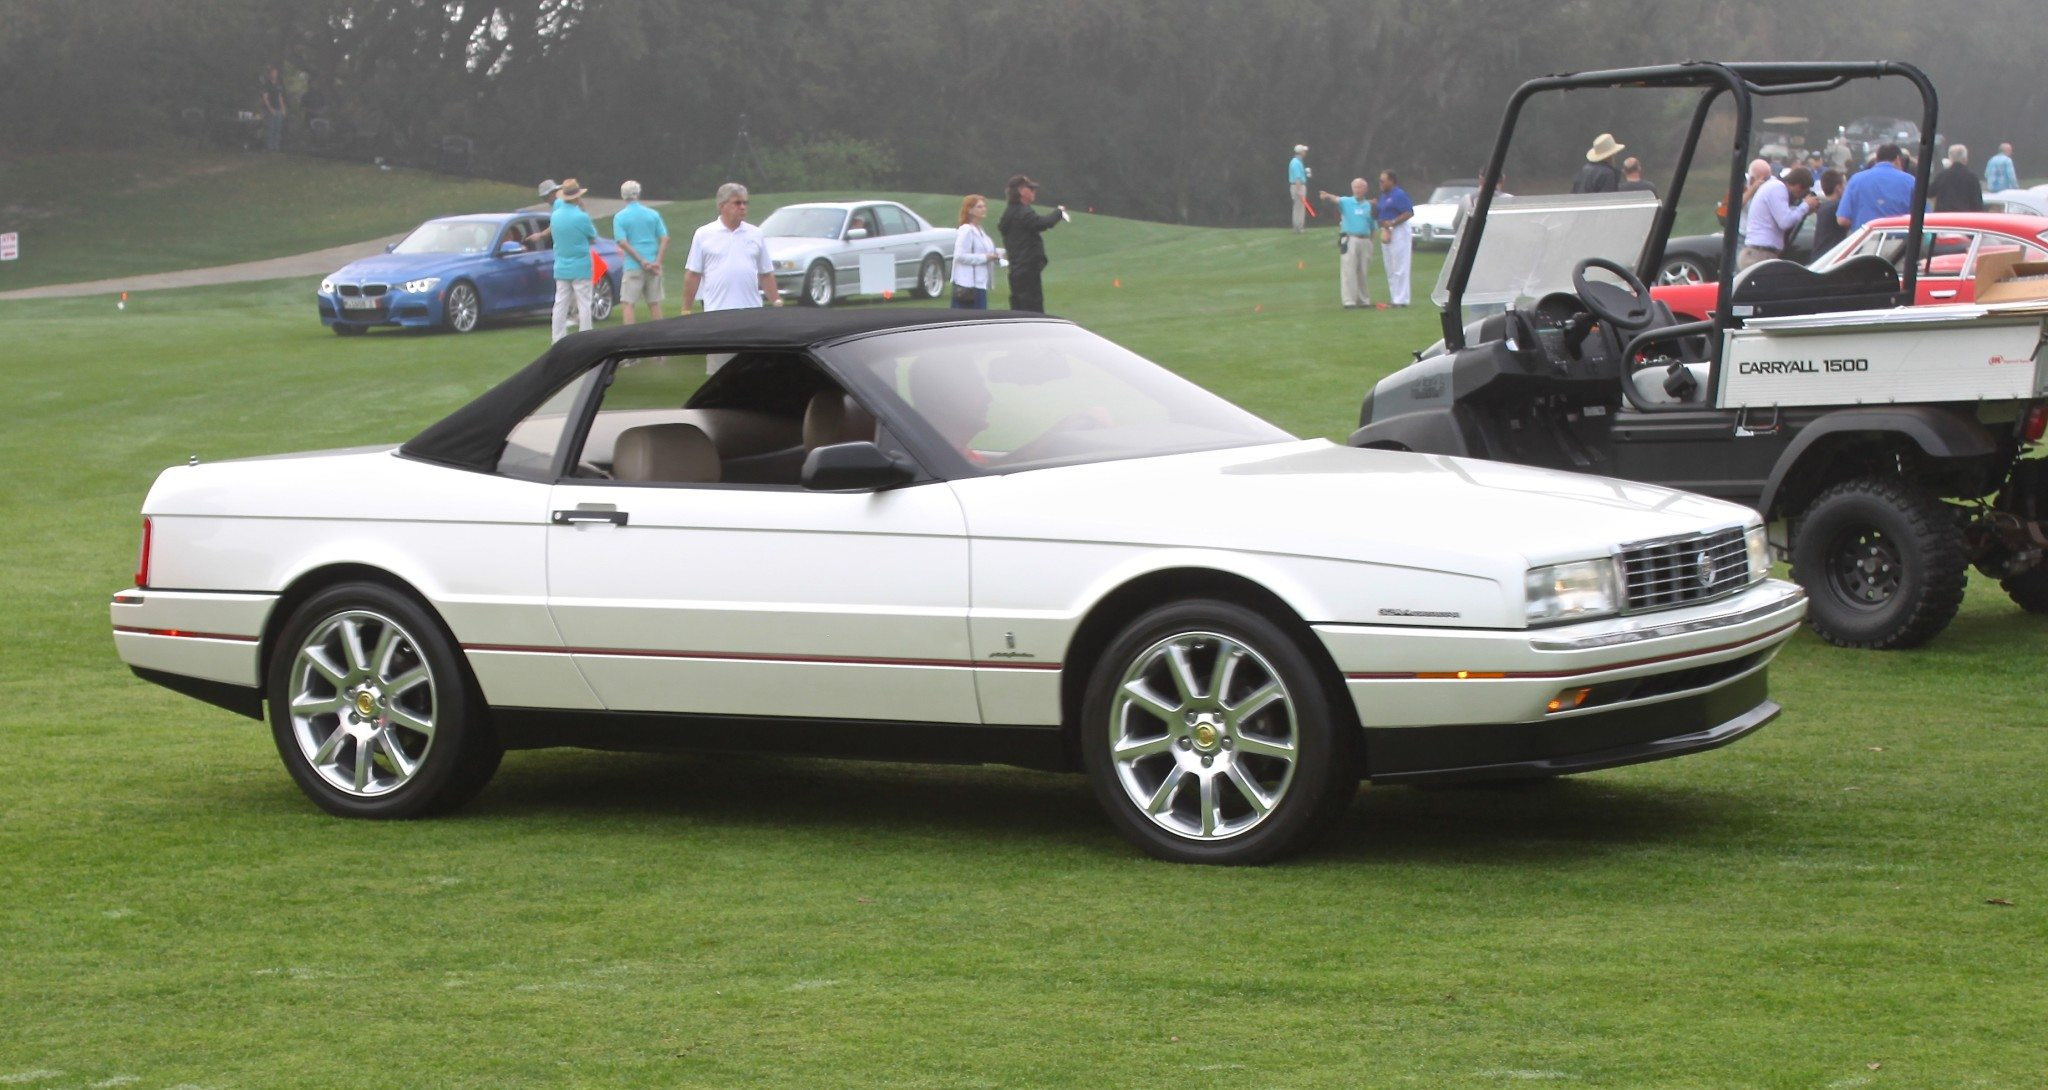 The Cadillac Allante 1987 1993 Heacock Classic Insurance